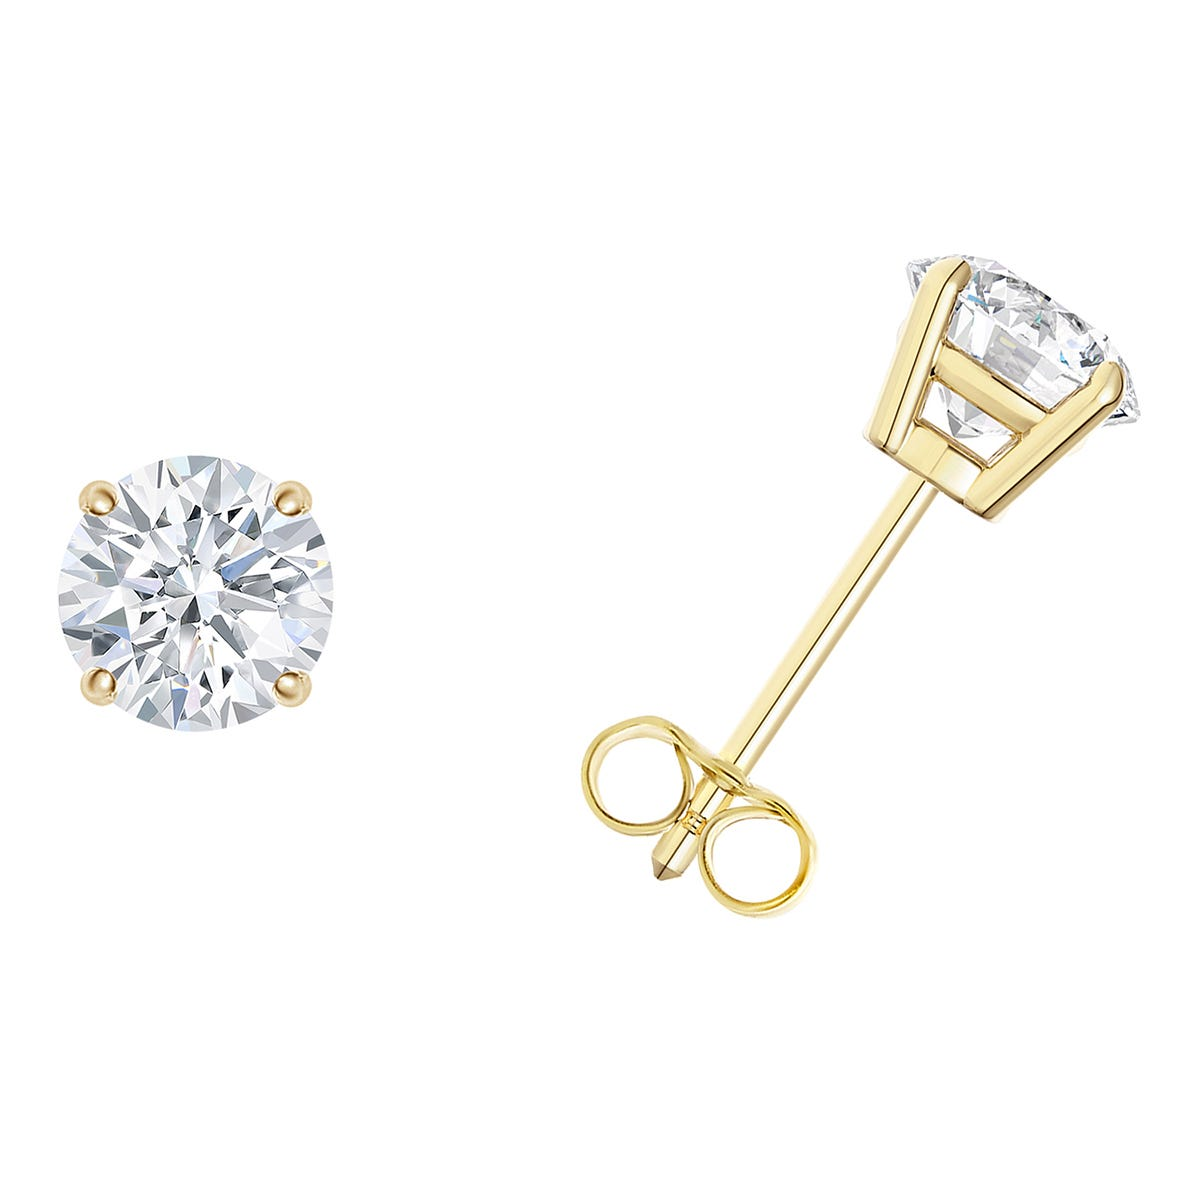 1/10 CTTW Round Diamond Solitaire Stud Earrings in 10K Yellow Gold 4-Prong IGI Certified I2